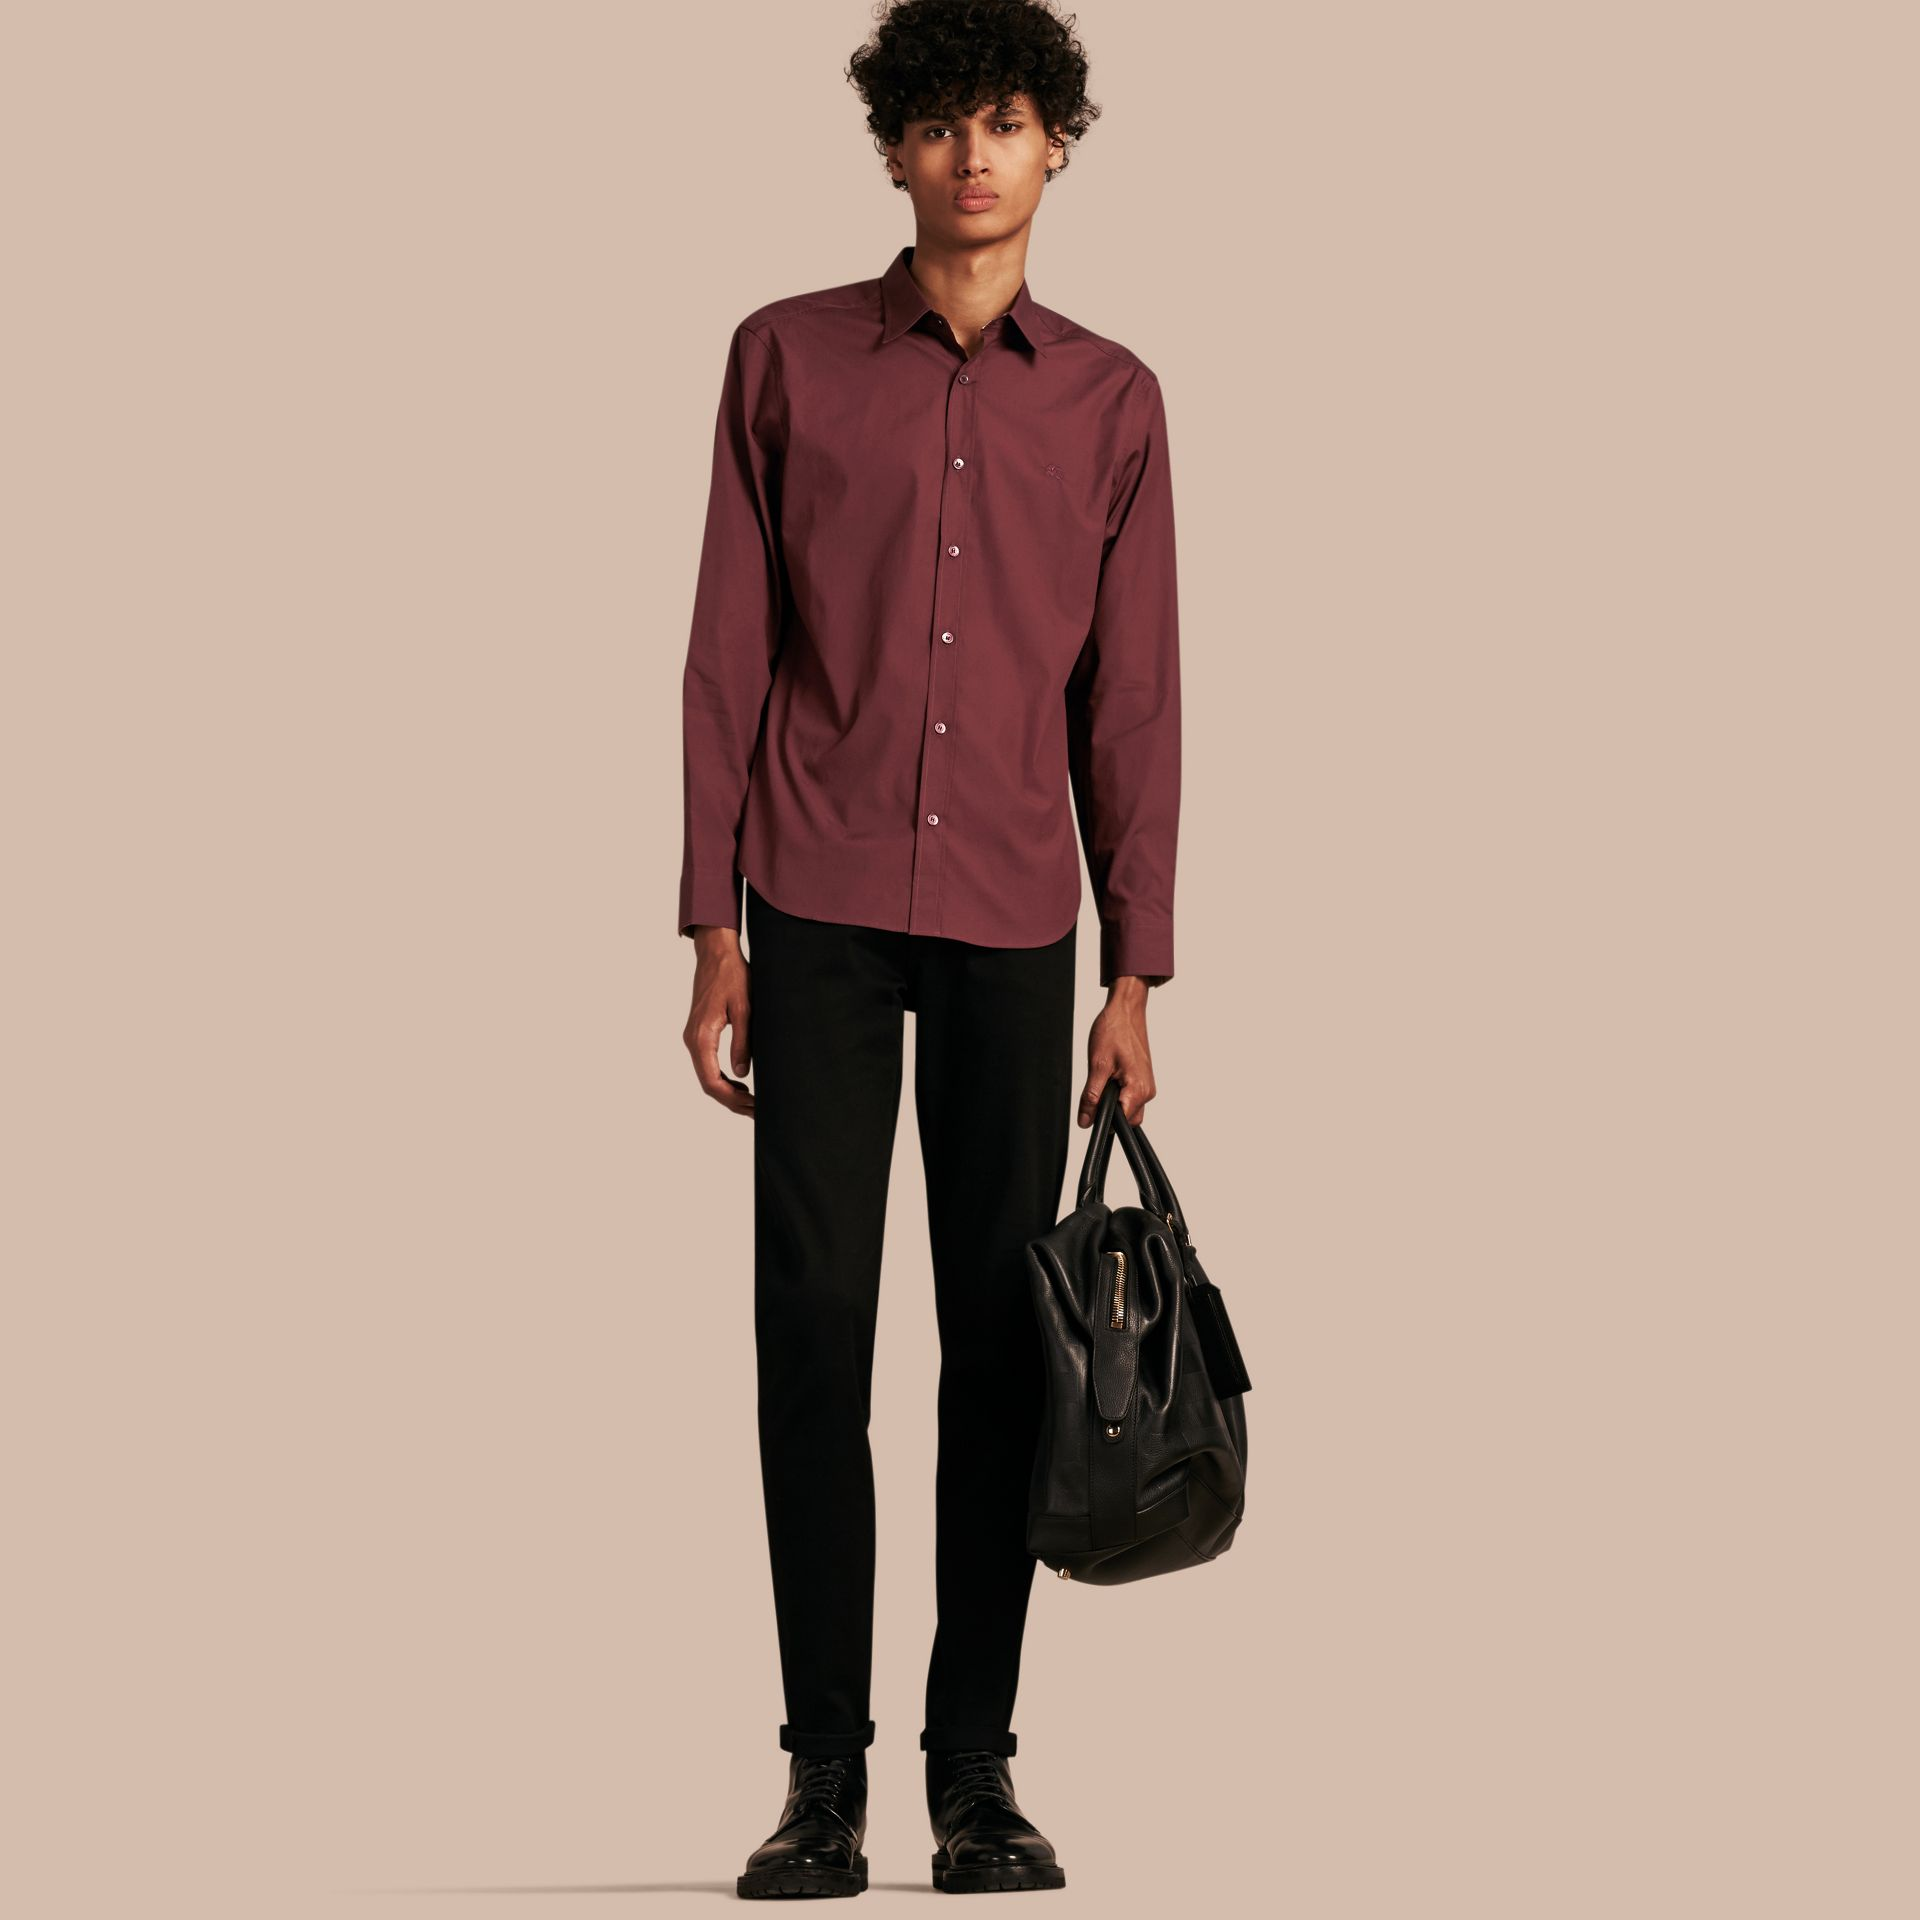 Oxblood Check Detail Stretch Cotton Poplin Shirt Oxblood - gallery image 1